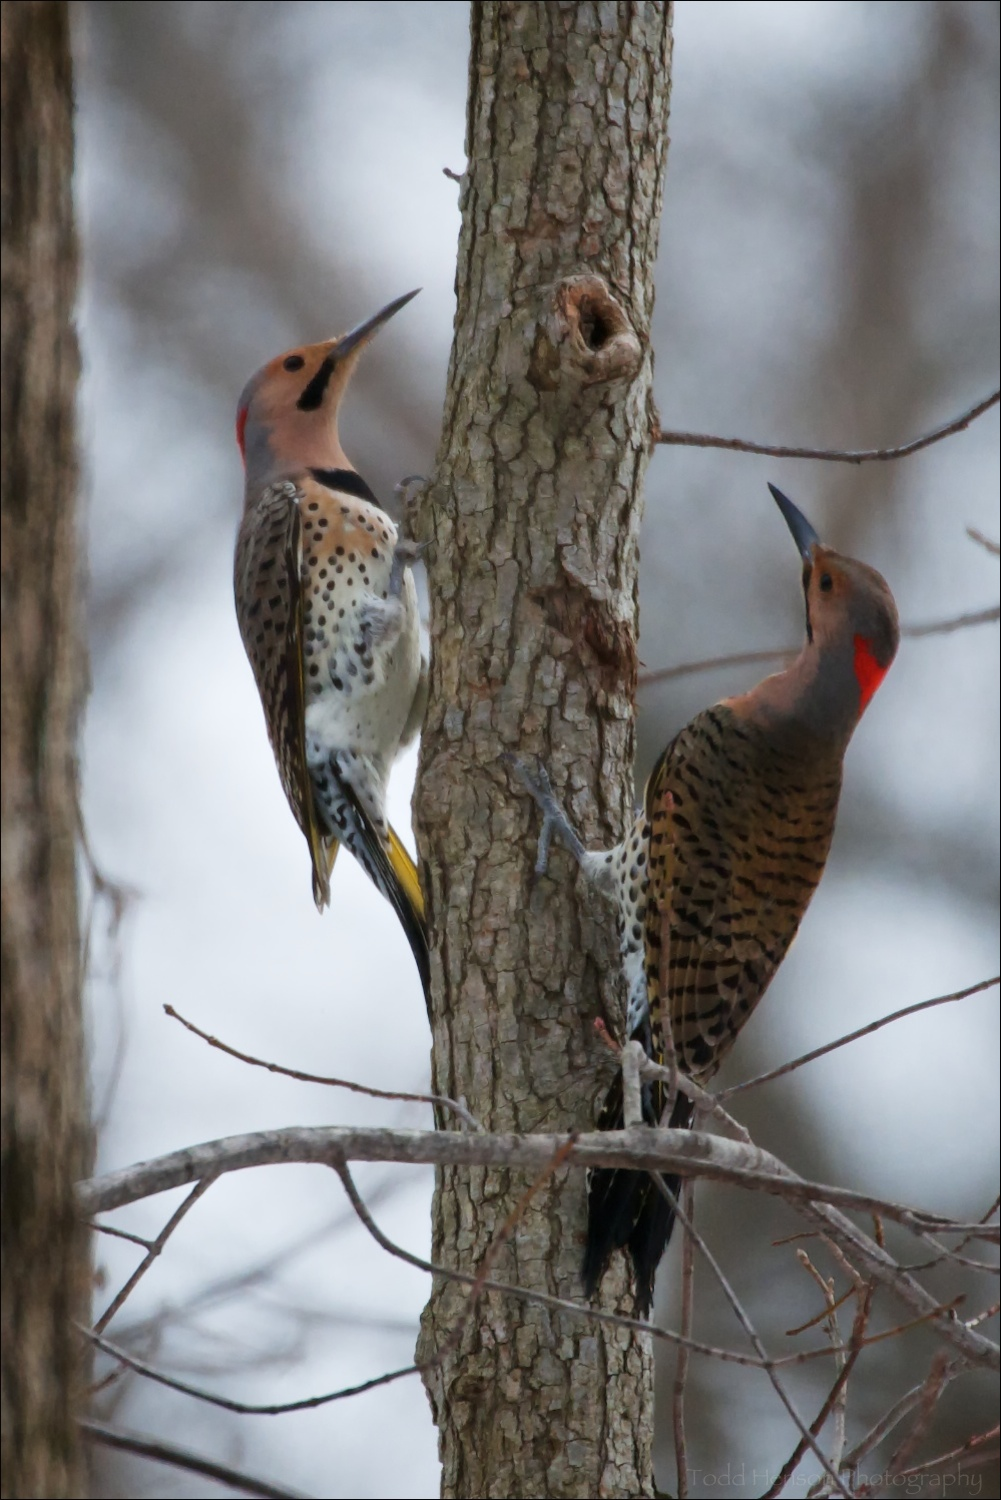 Two male Northern Flicker playing hide and seek